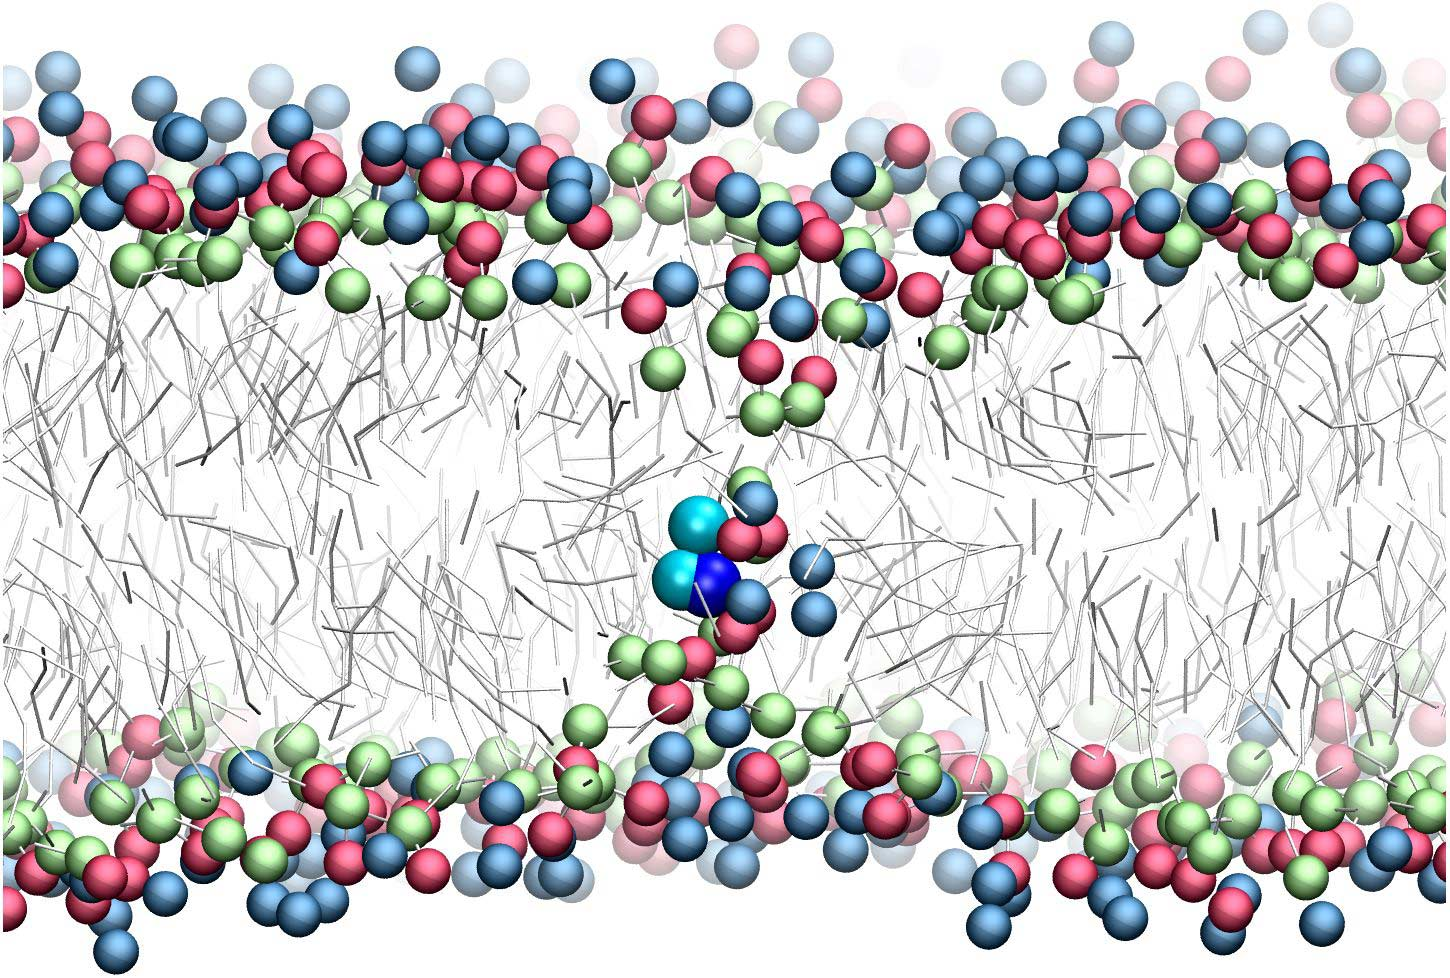 Refining amino acid hydrophobicity for dynamics simulation of membrane proteins